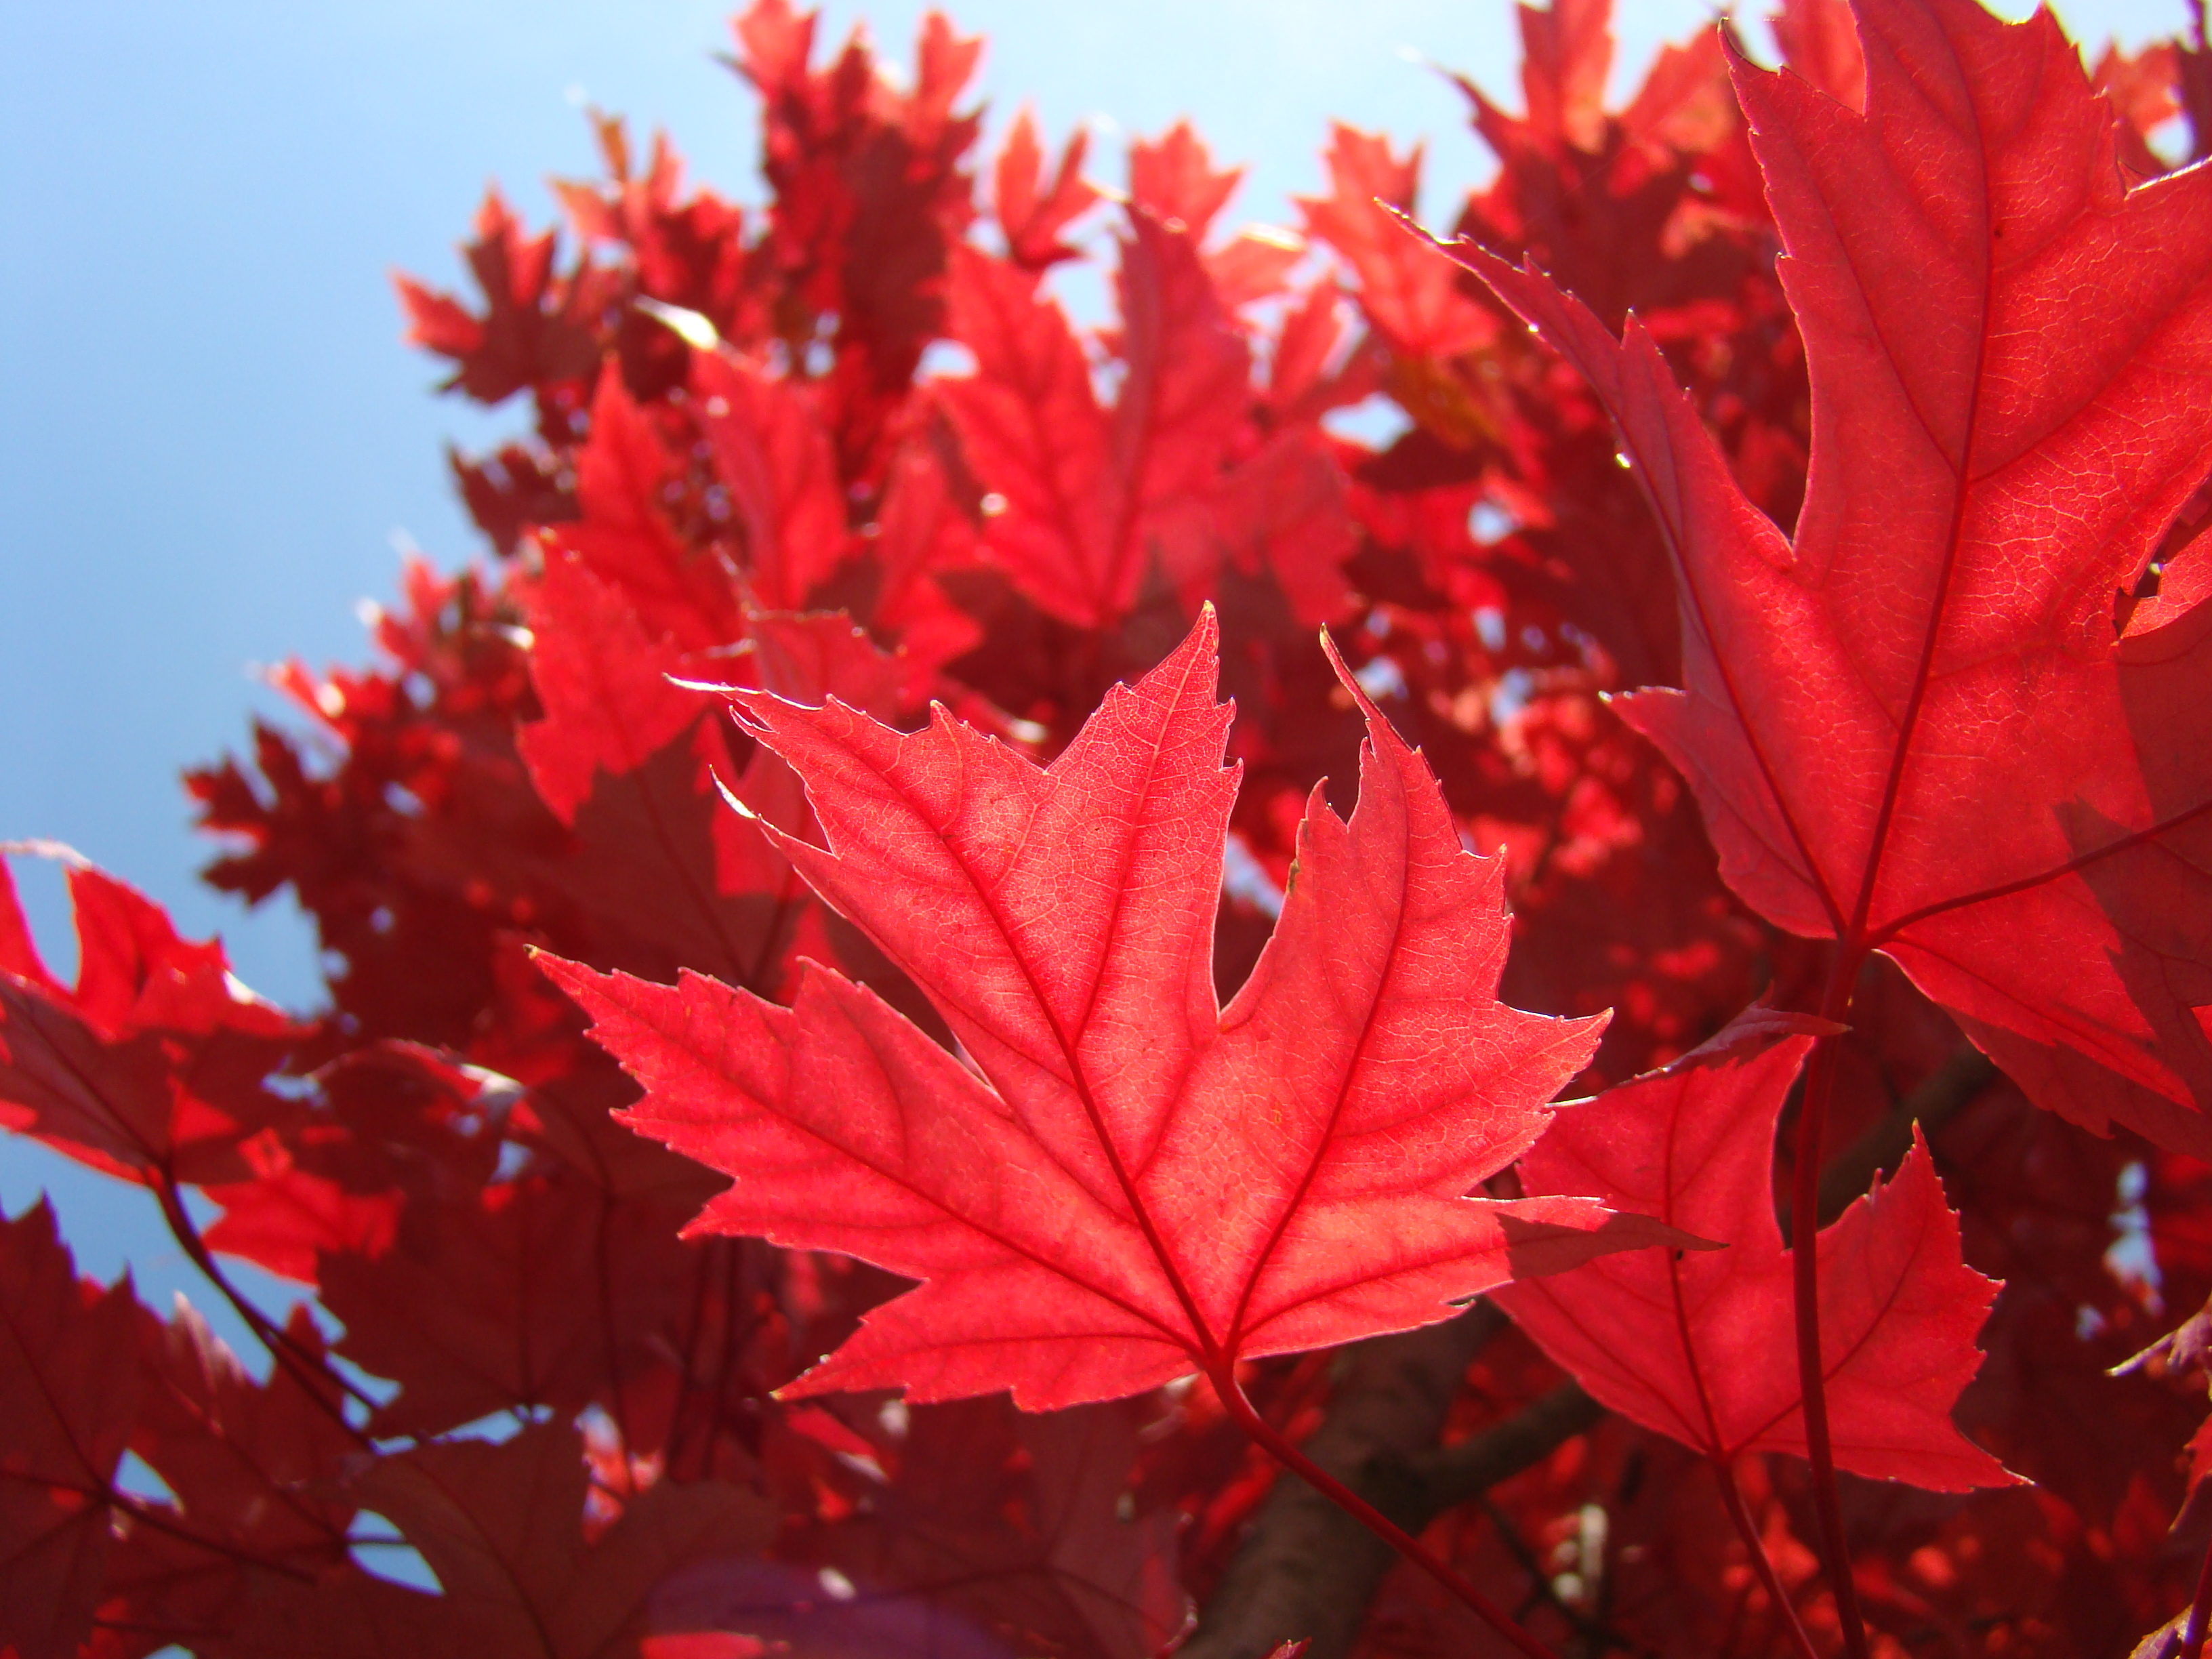 Labels Red Autumn Leaves Photography Hd Wallpapers For: Red Leaves Tree Wallpapers High Quality